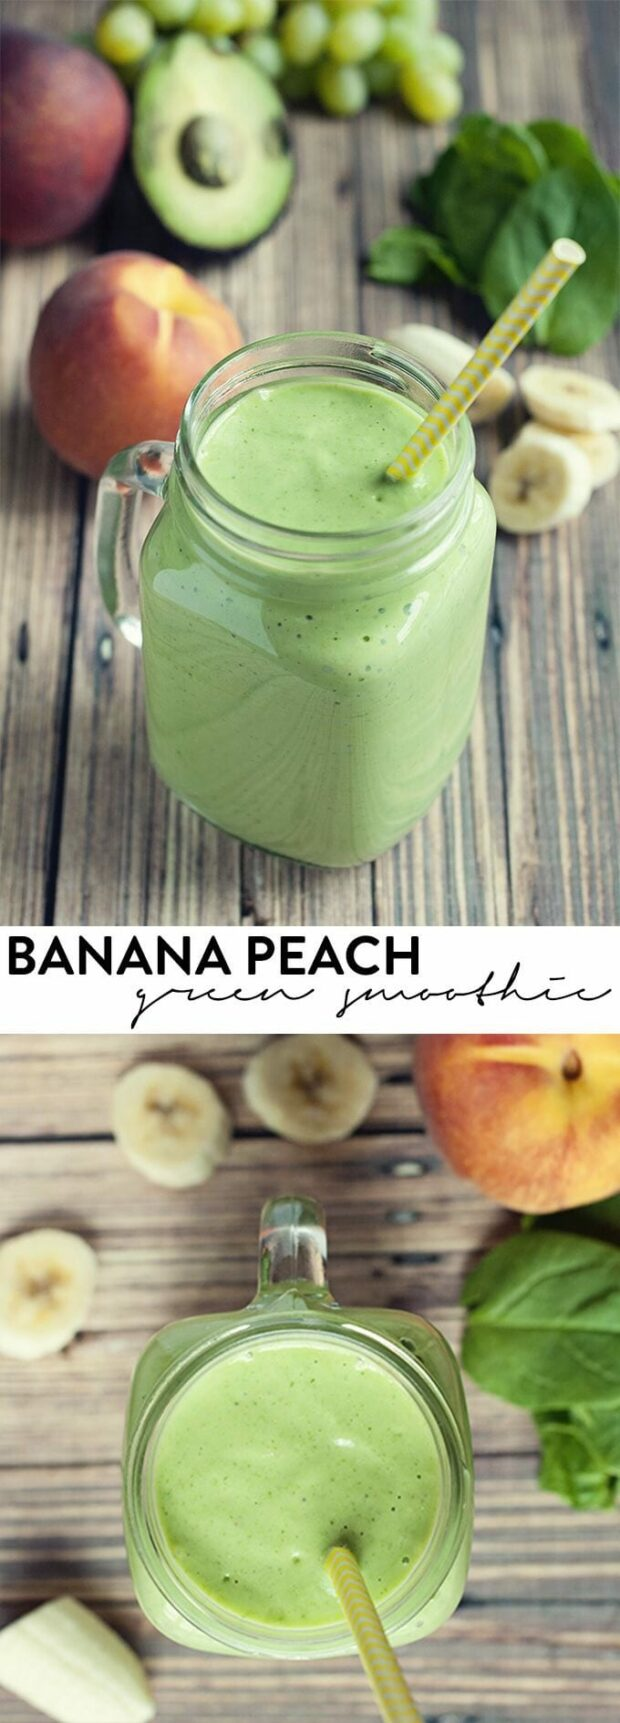 The Best Green Smoothie Recipes: 15 Great Ideas (Part 1)